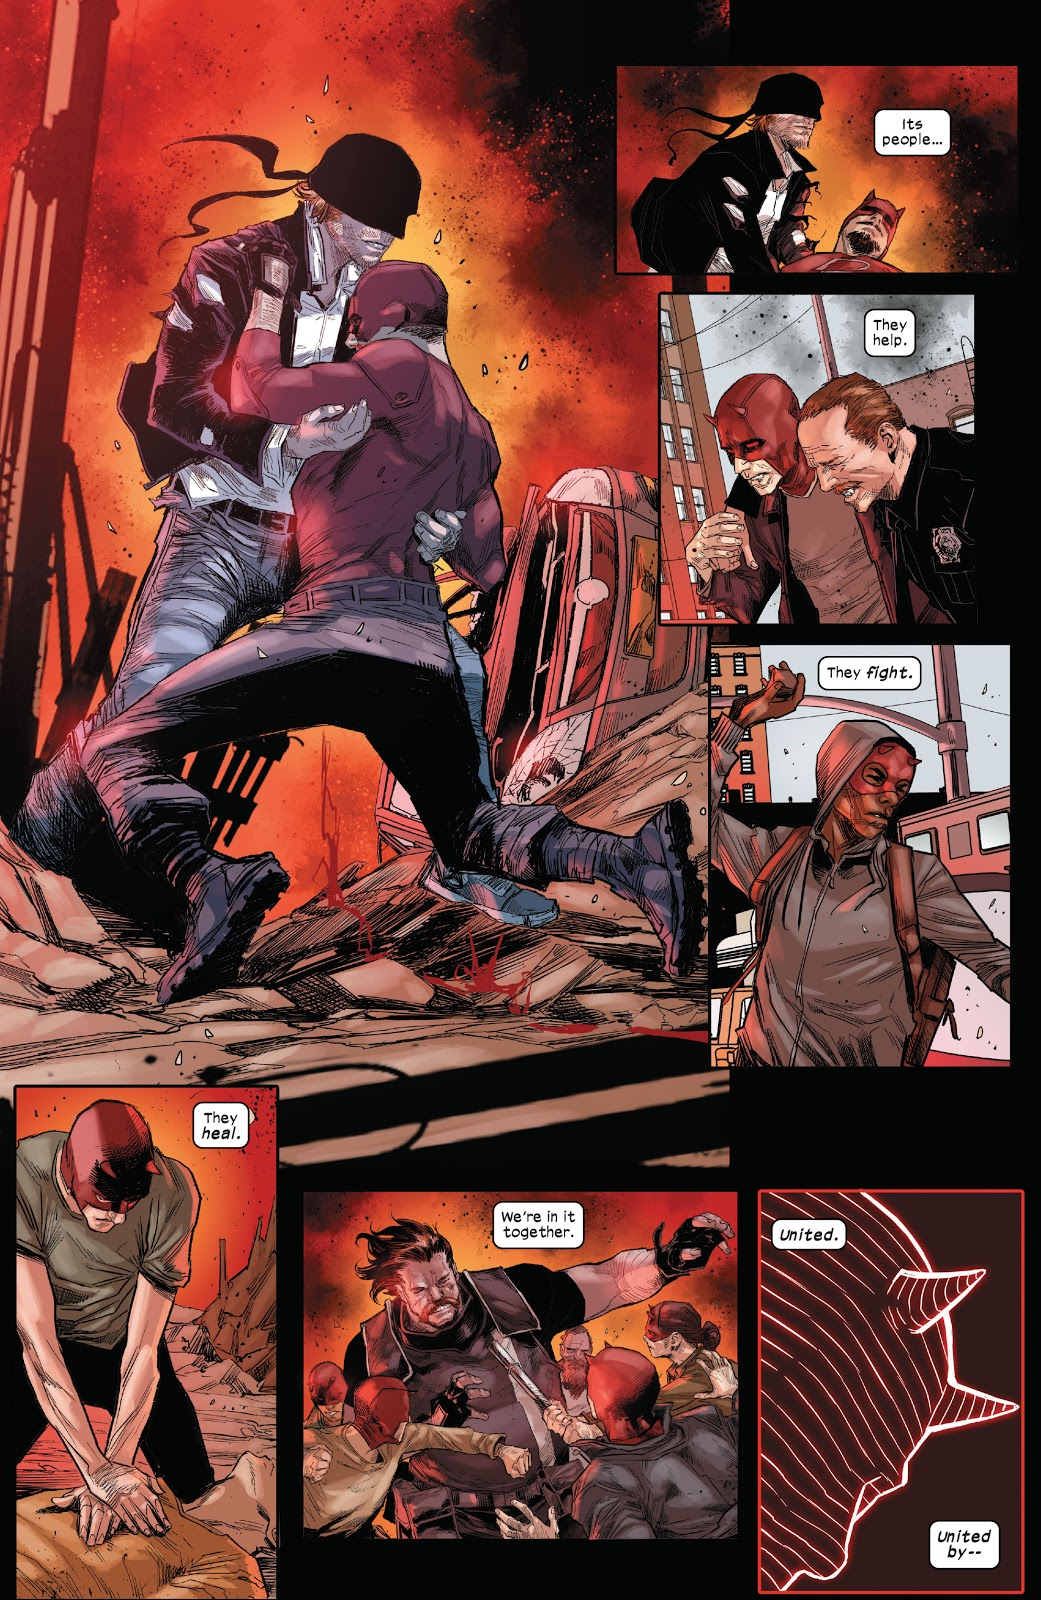 Hells Kitchen Pay Homage To Daredevil